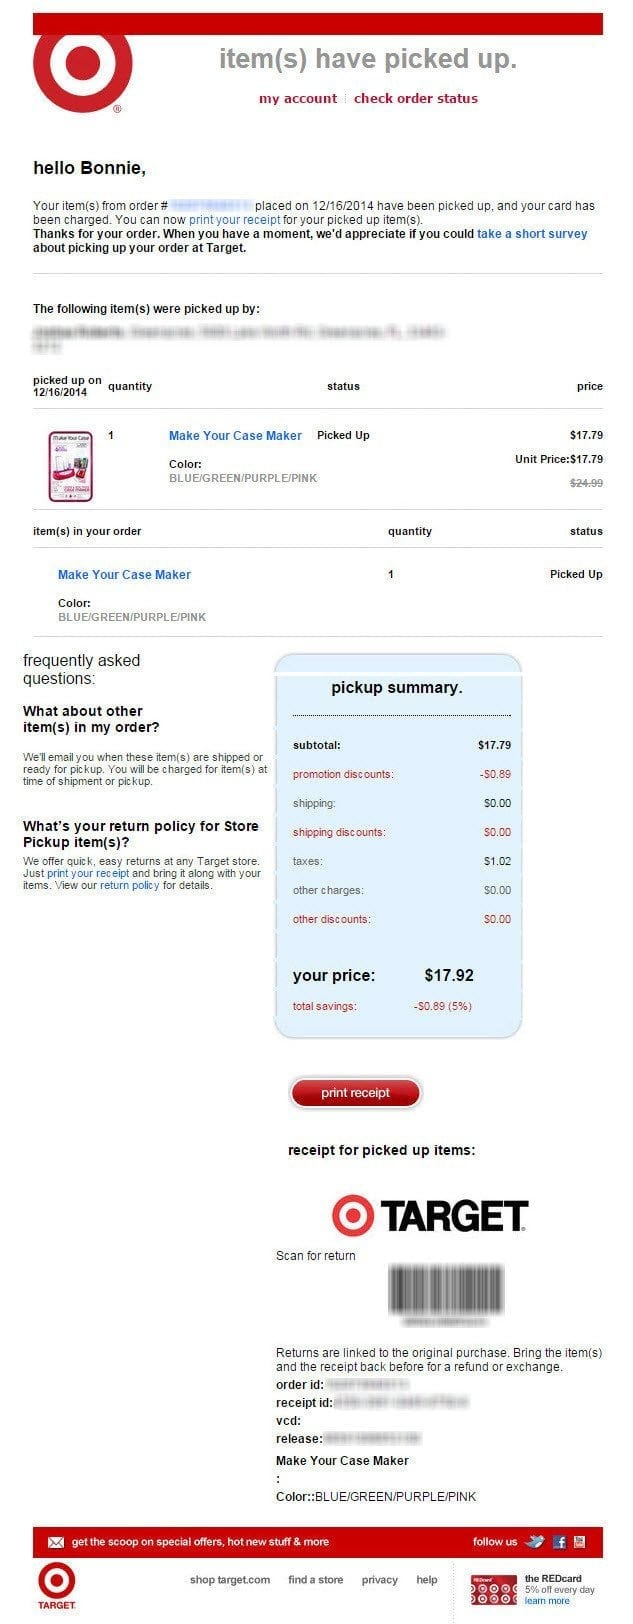 bonnie_3_retail_target_order_pick_up_receipt